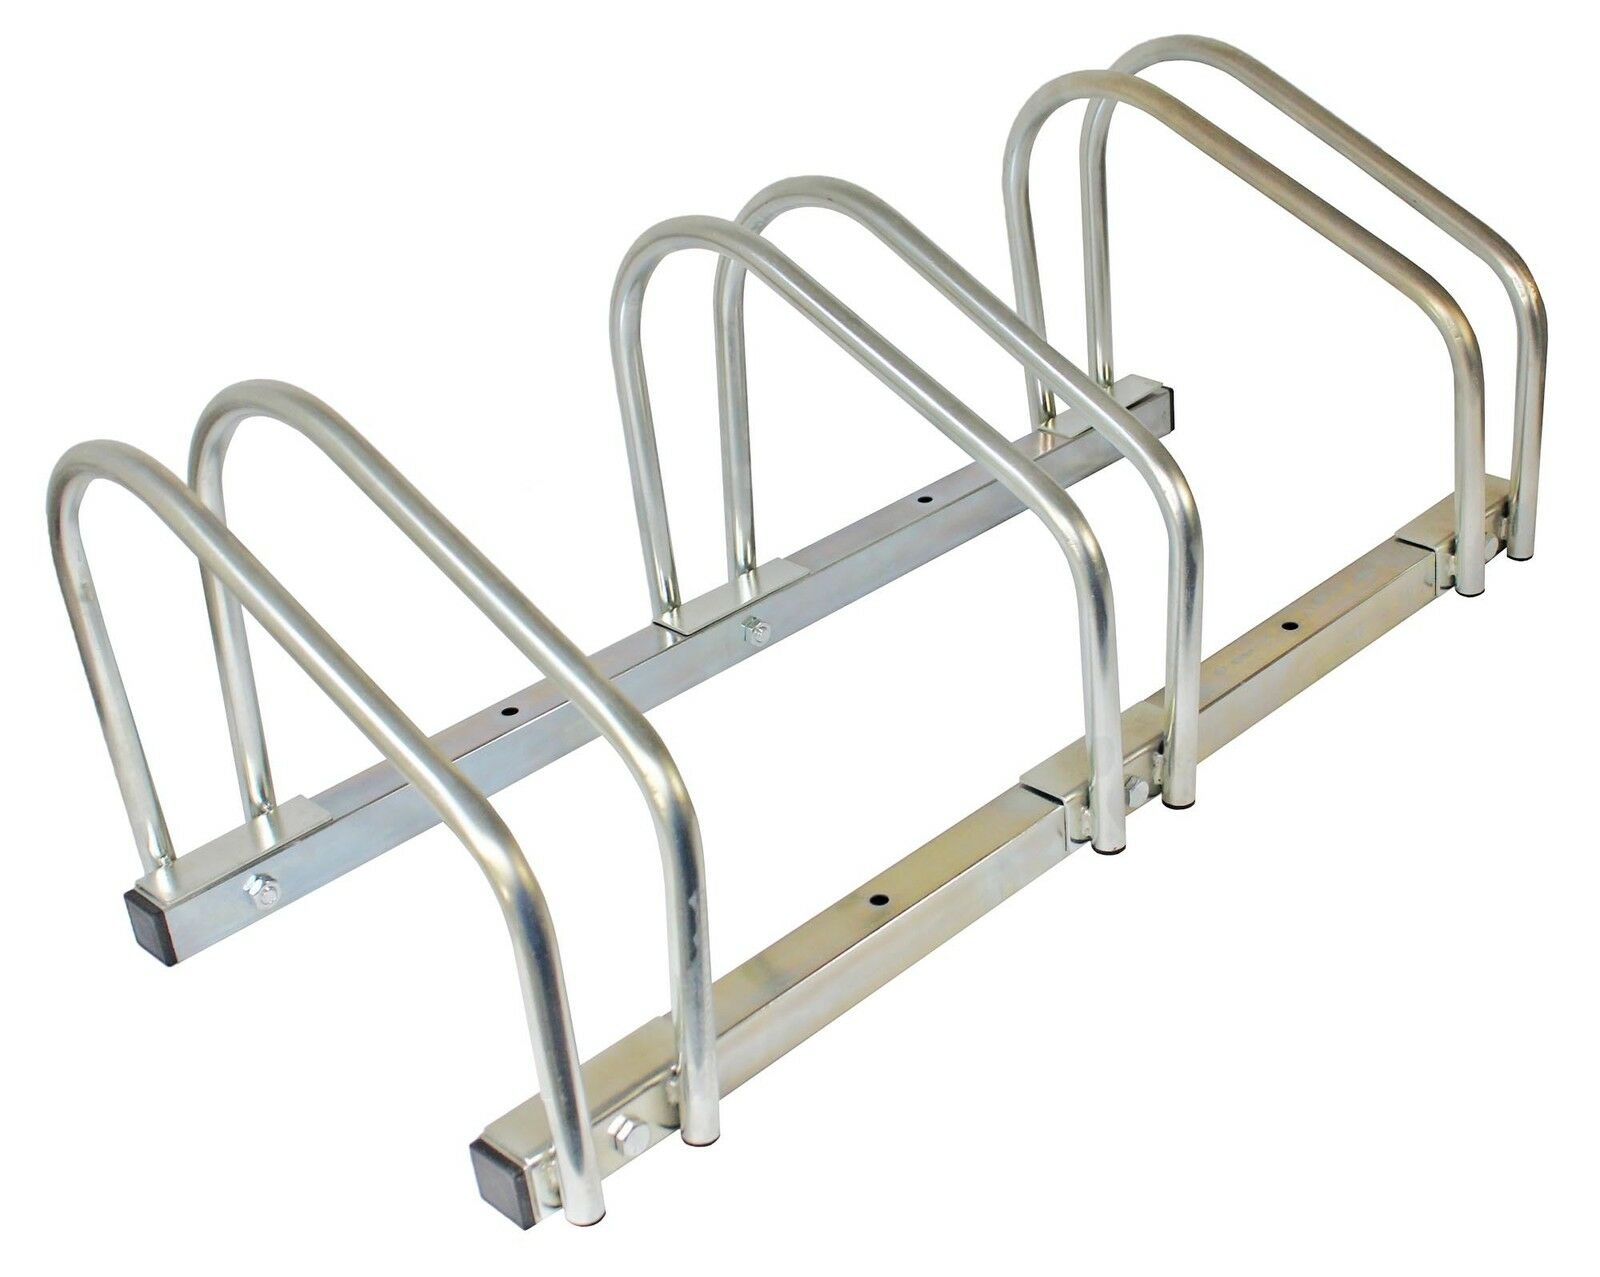 Parking system for bike 3 wheel prop stand support